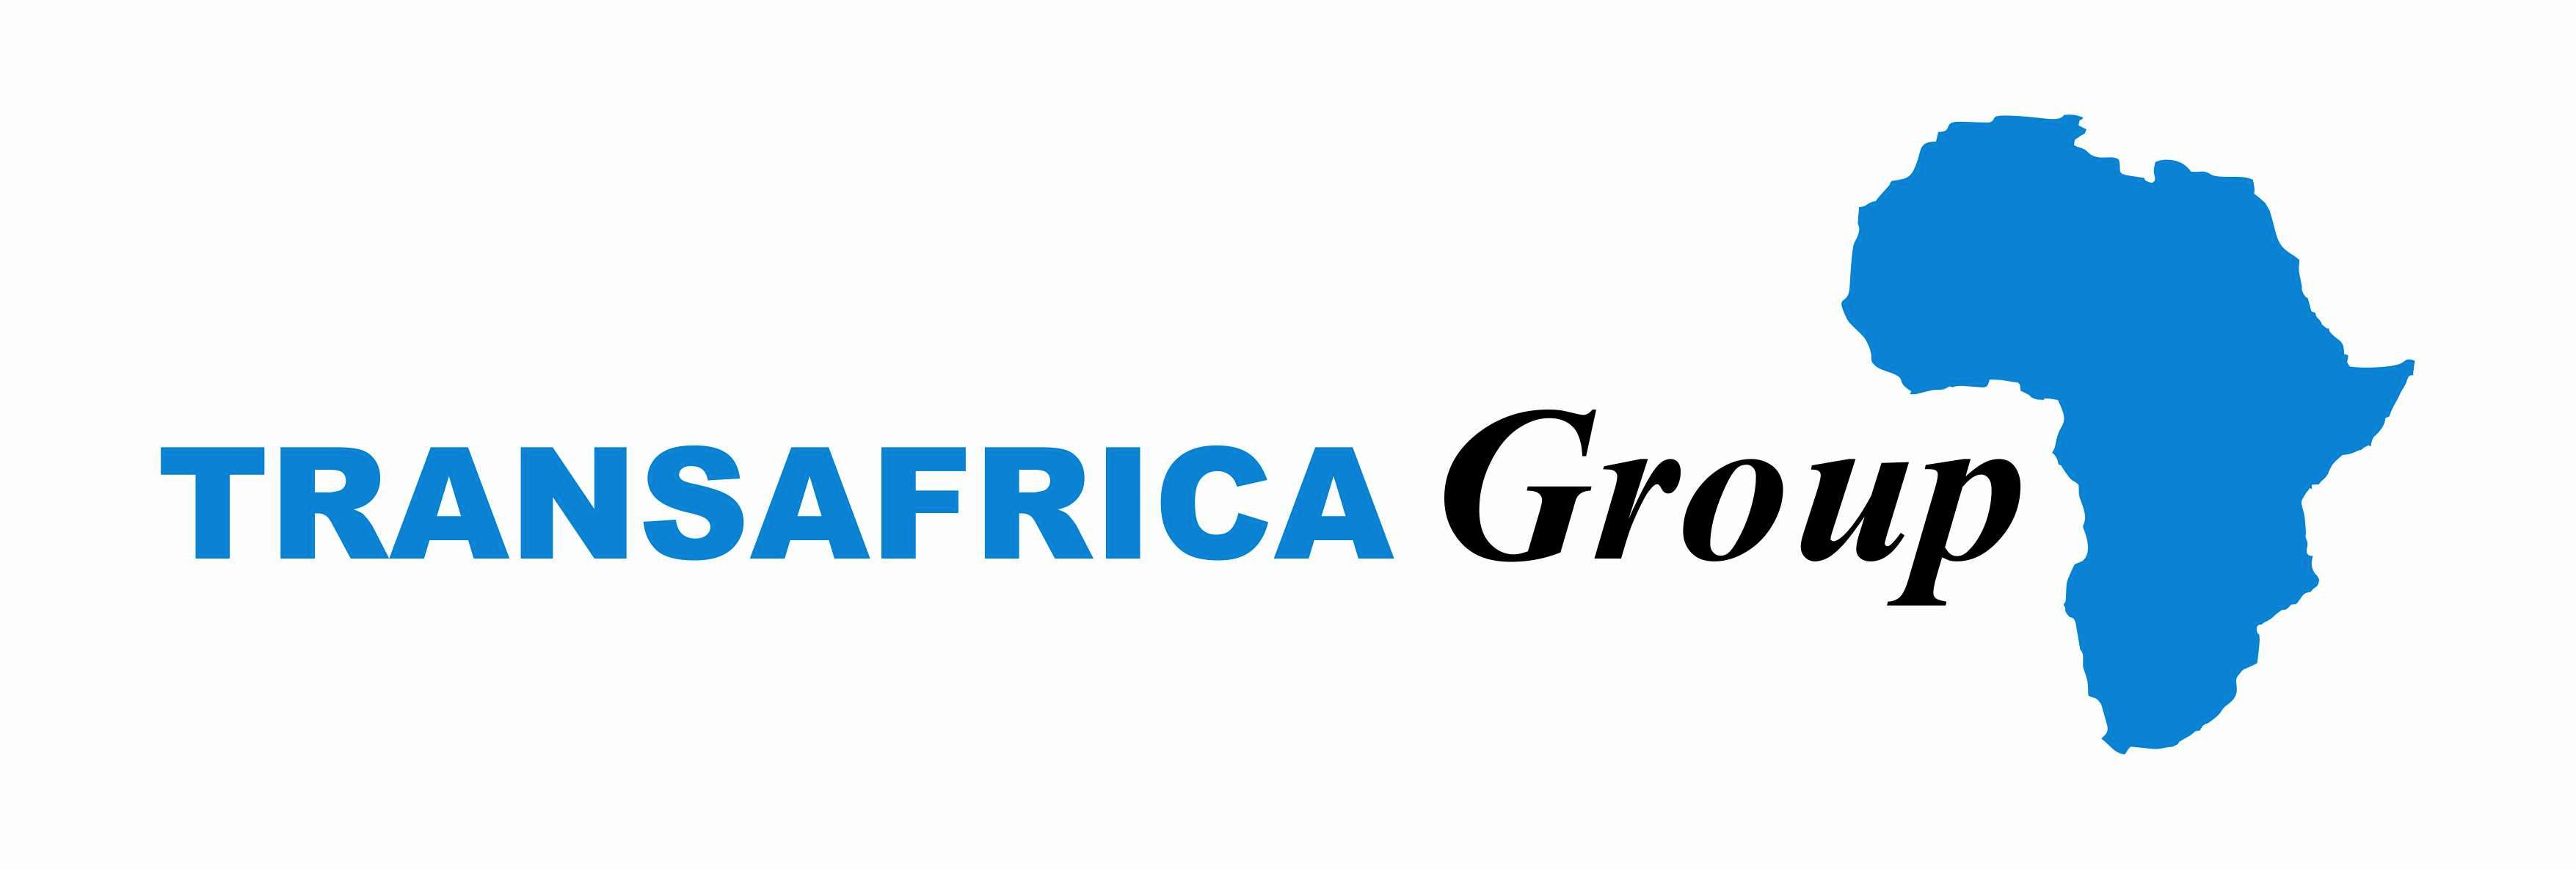 Transafrica Group